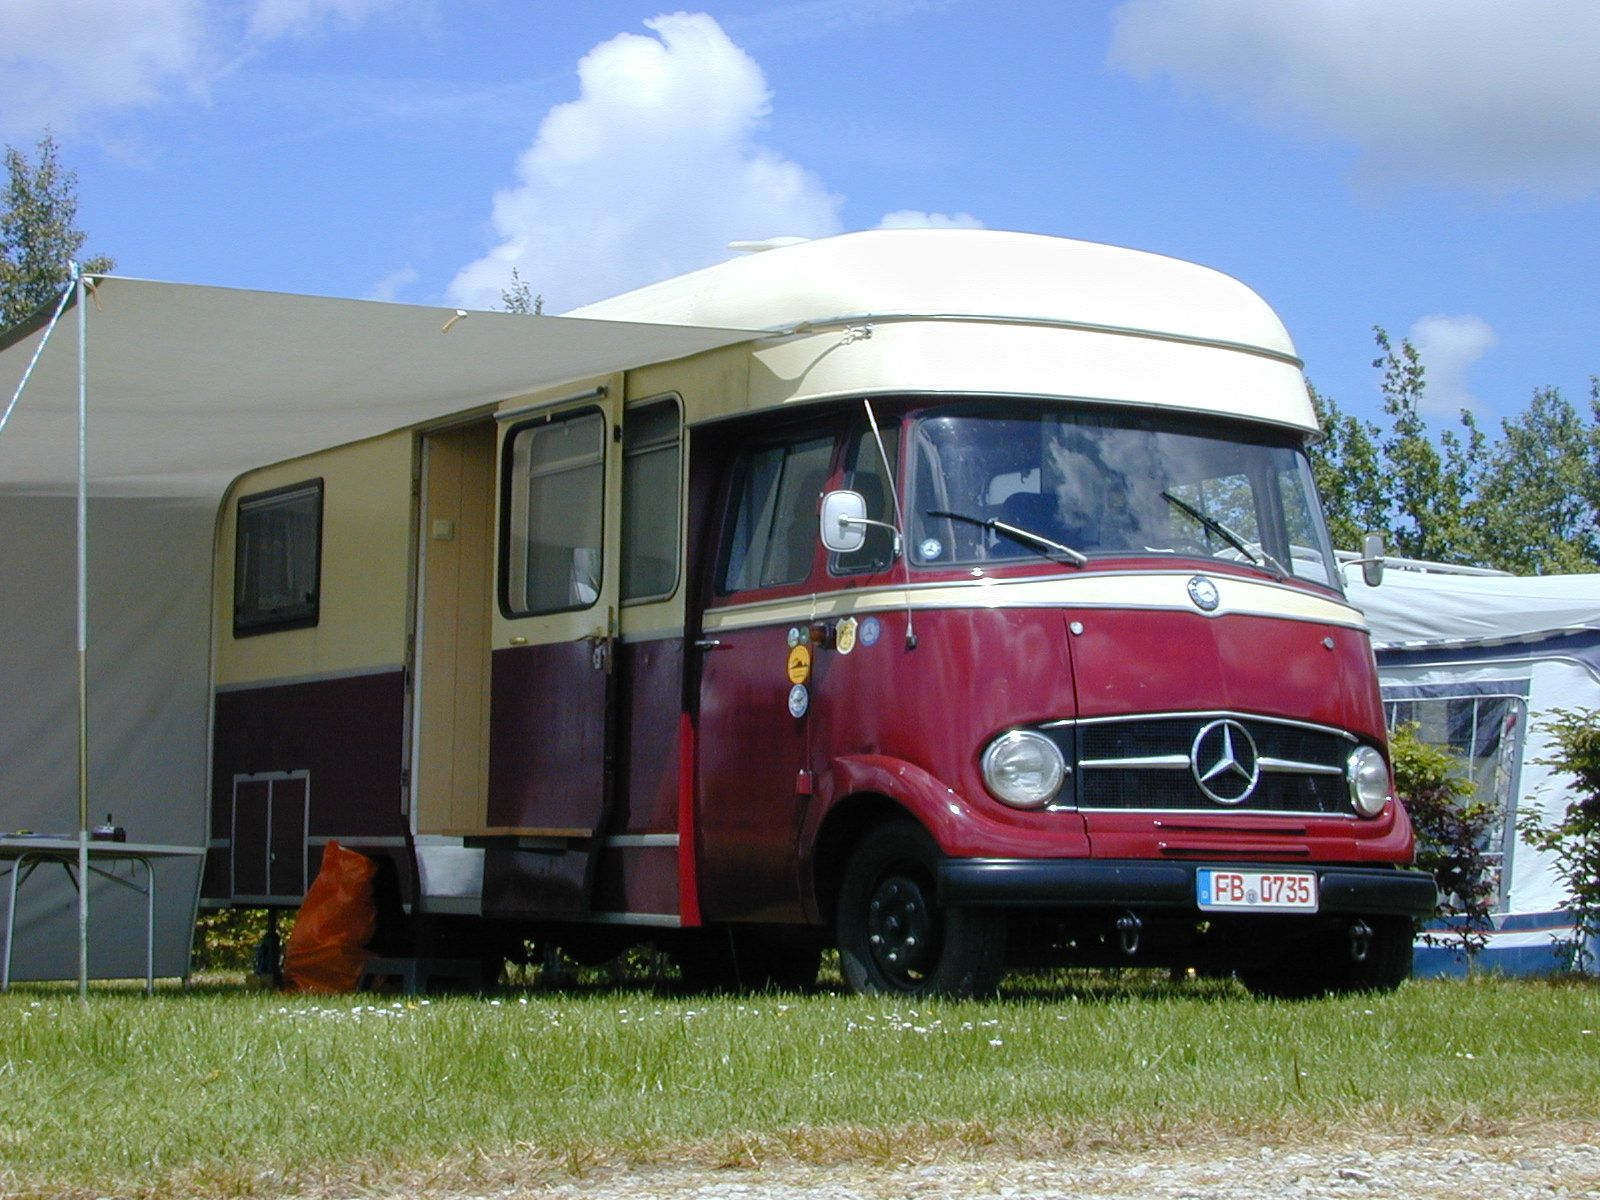 notin mercedes camper mercedes pinterest poid lourd mercedes et camping car integral. Black Bedroom Furniture Sets. Home Design Ideas